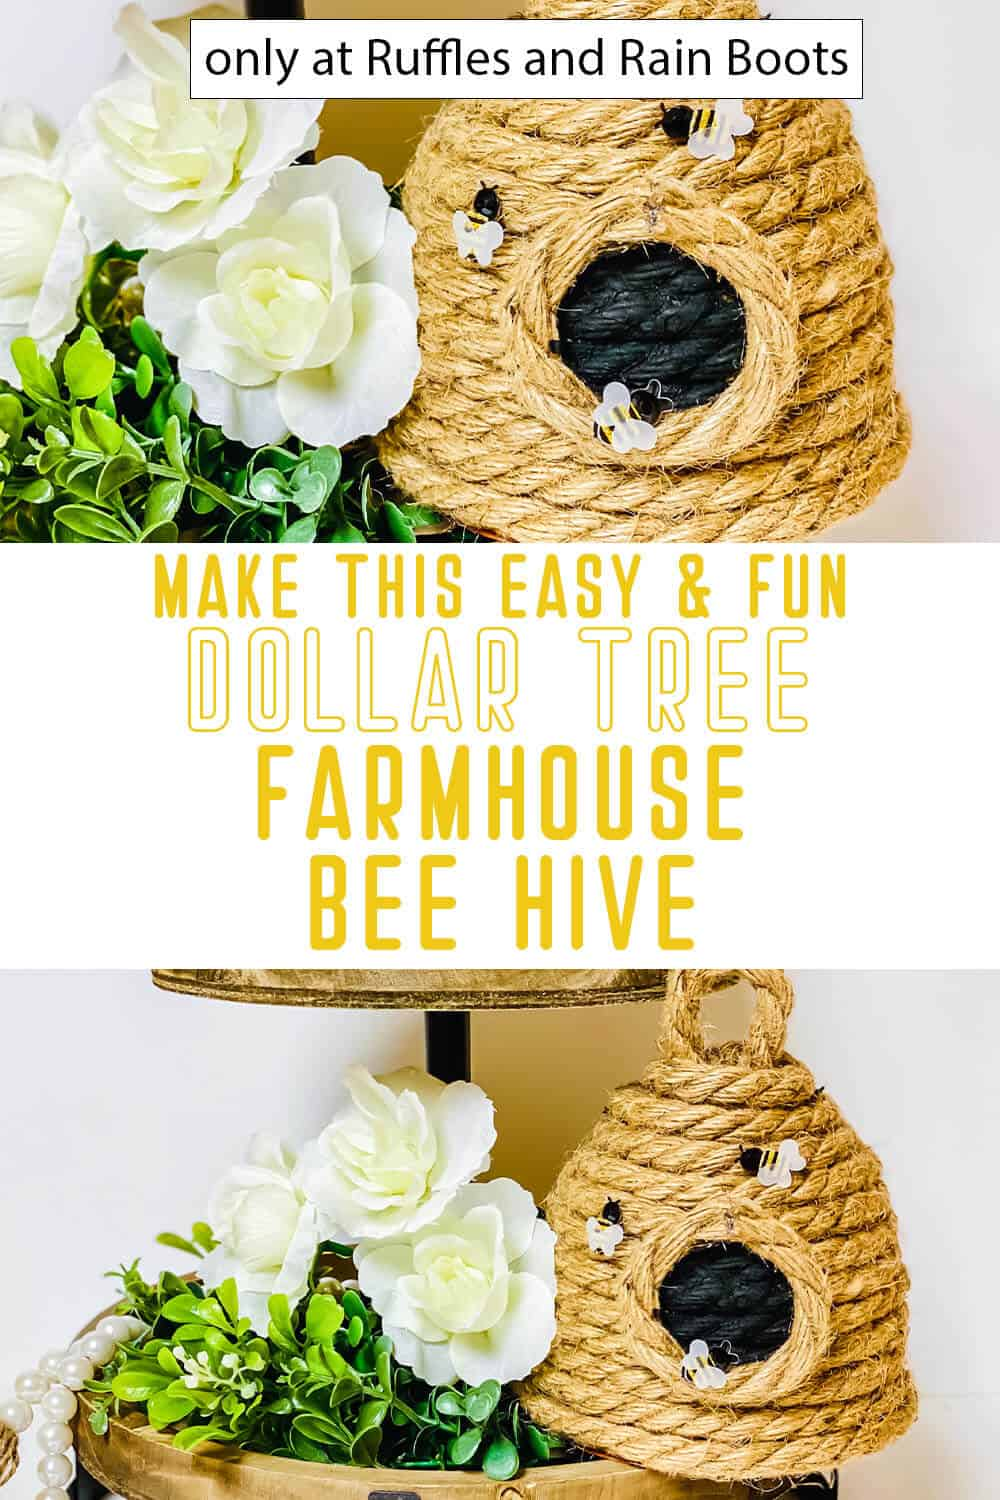 photo collage of dollar tree diy bee hive with text which reads make this easy & fun dollar tree farmhouse bee hive